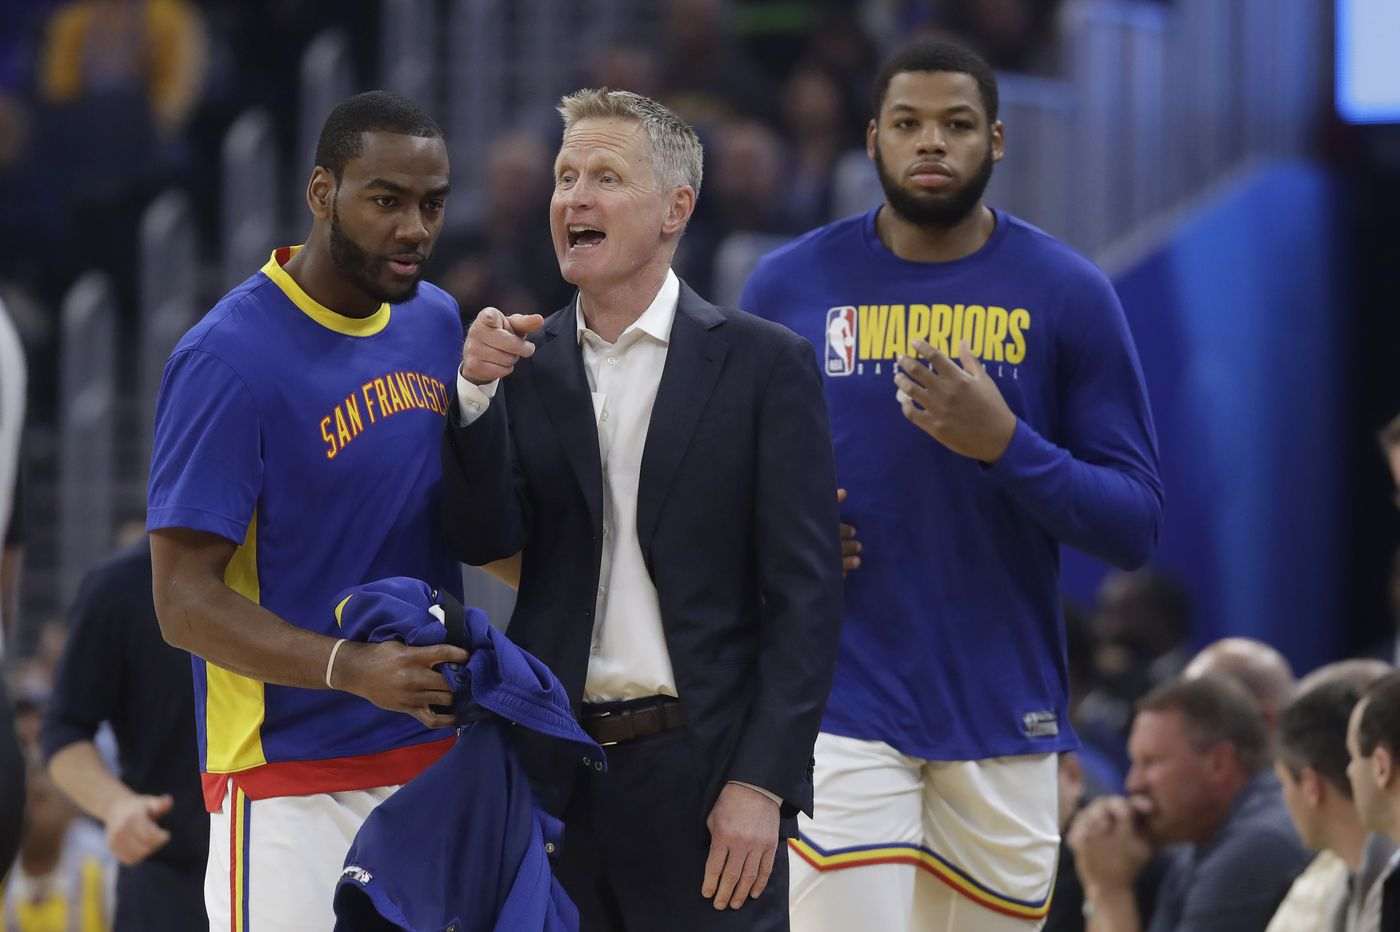 Warriors' Steve Kerr: Sixers game will be 'emotional and difficult to play'